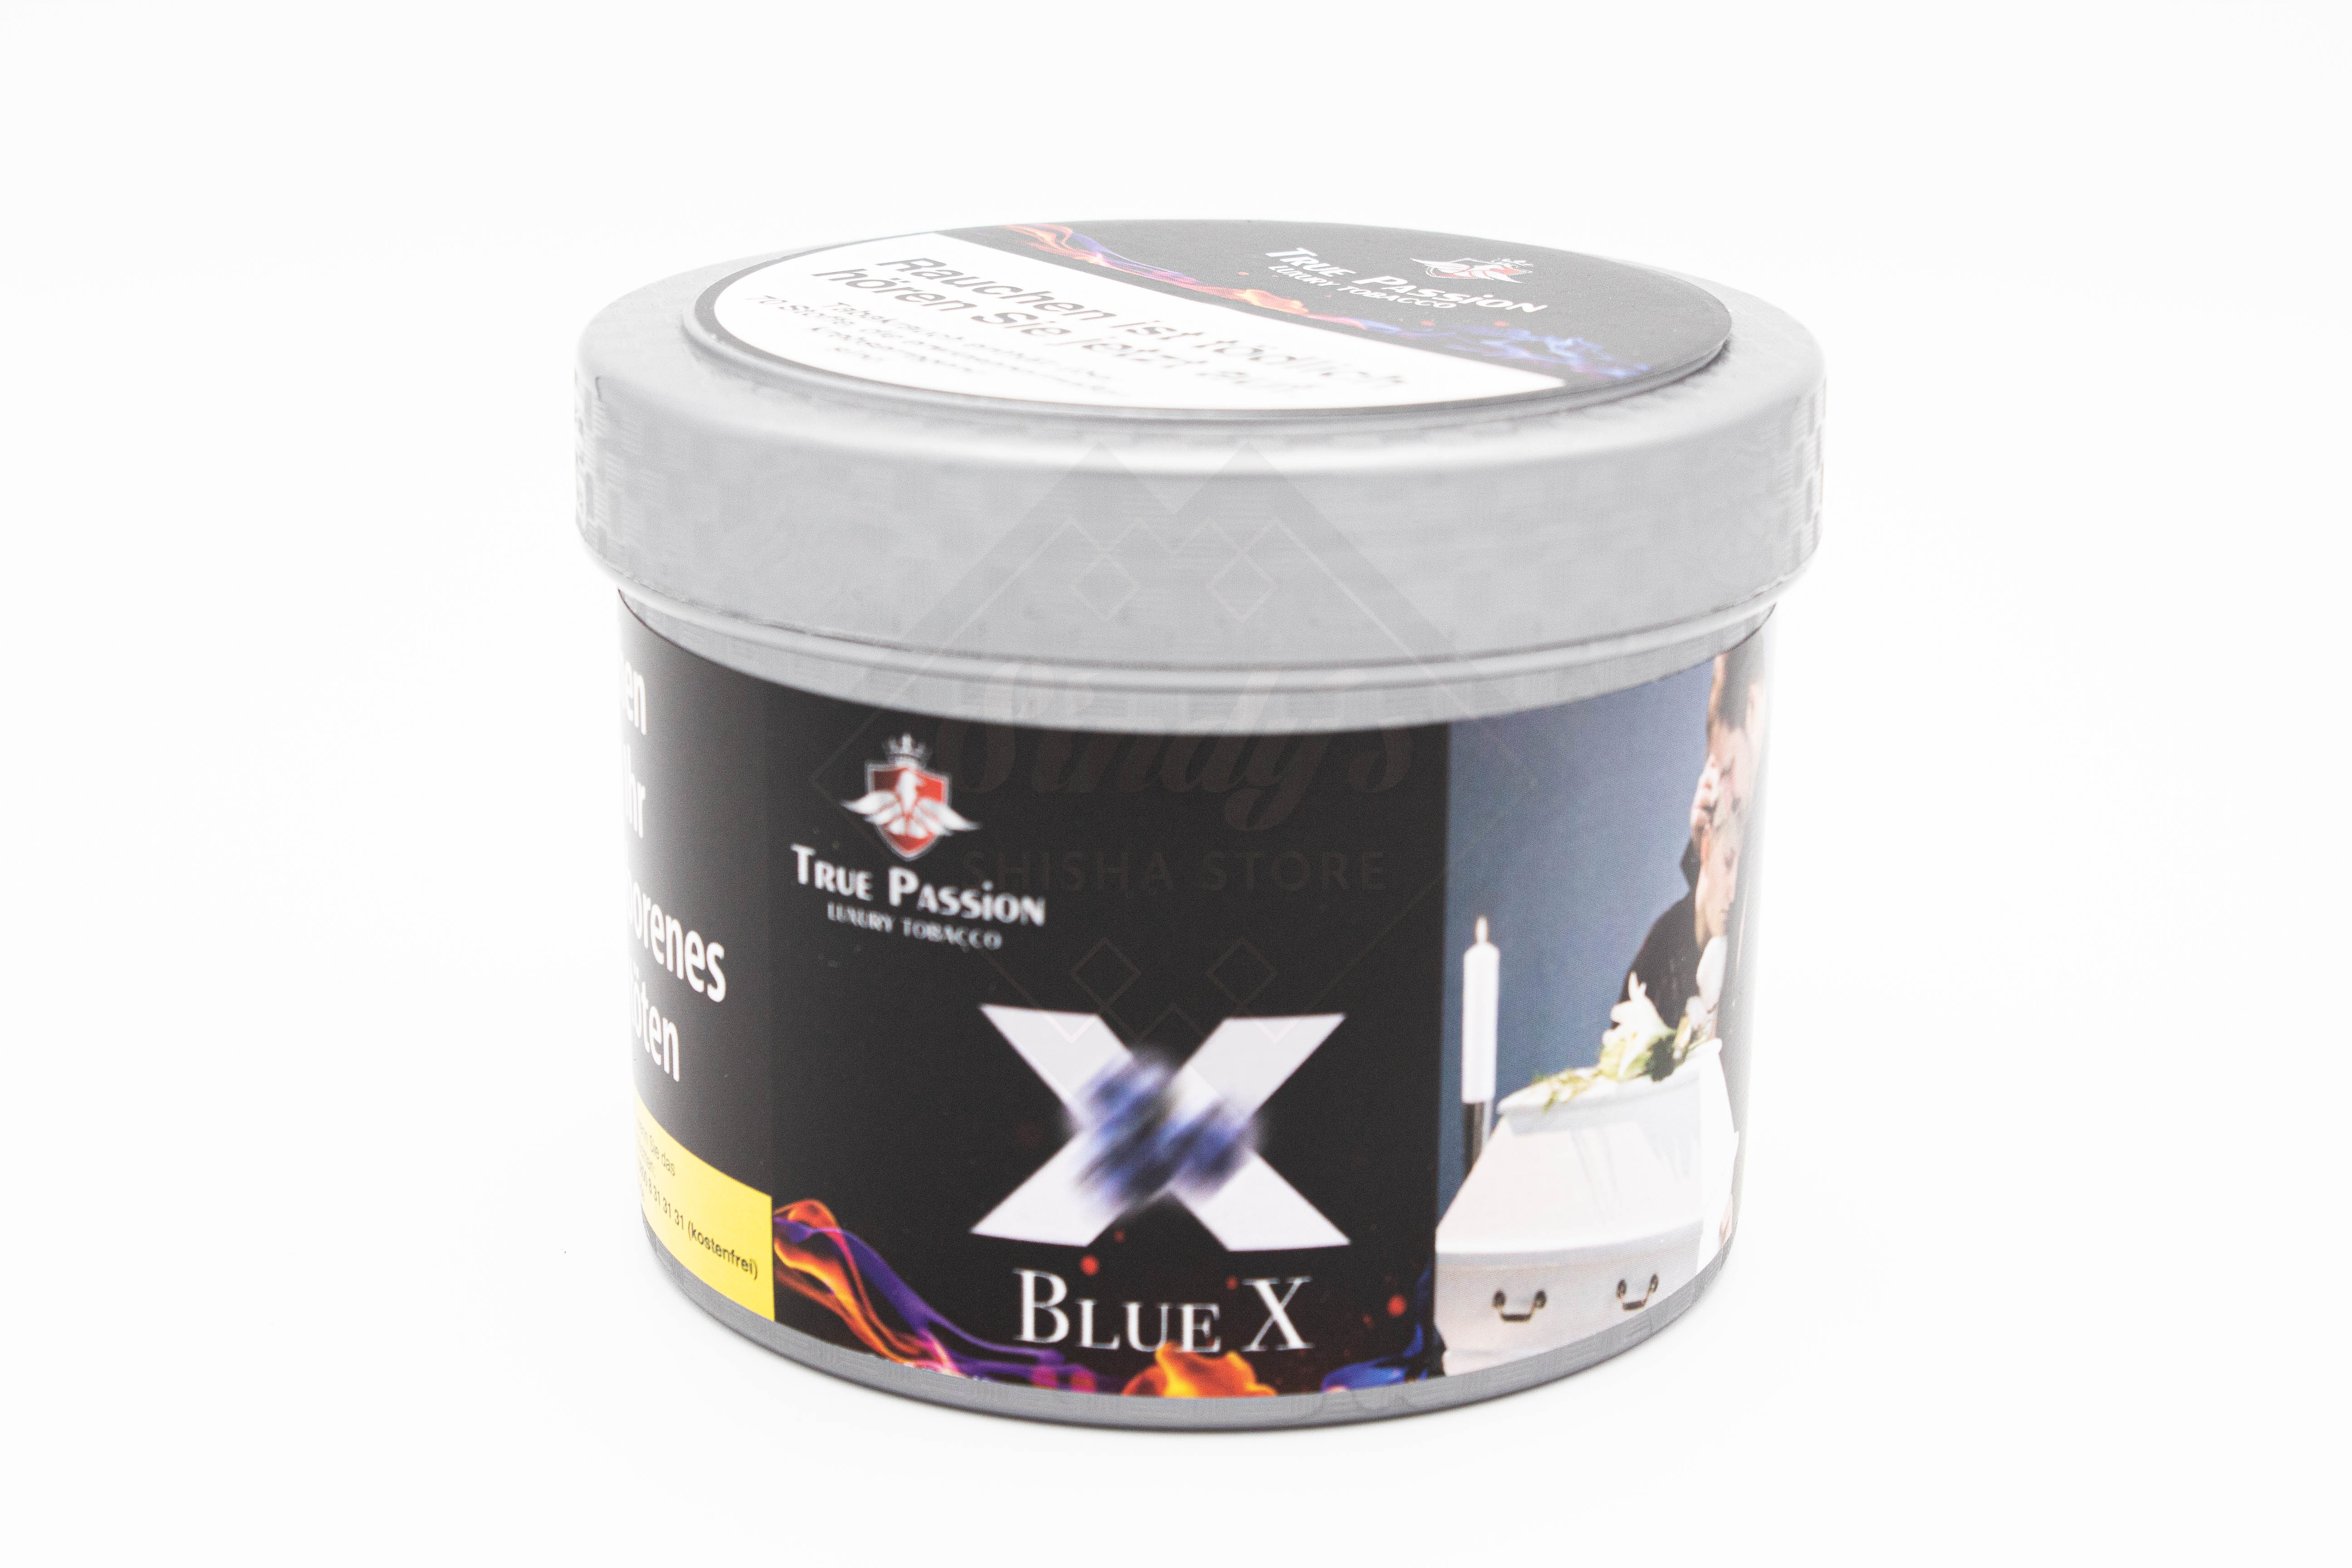 True Passion Tobacco - BlueX 200g